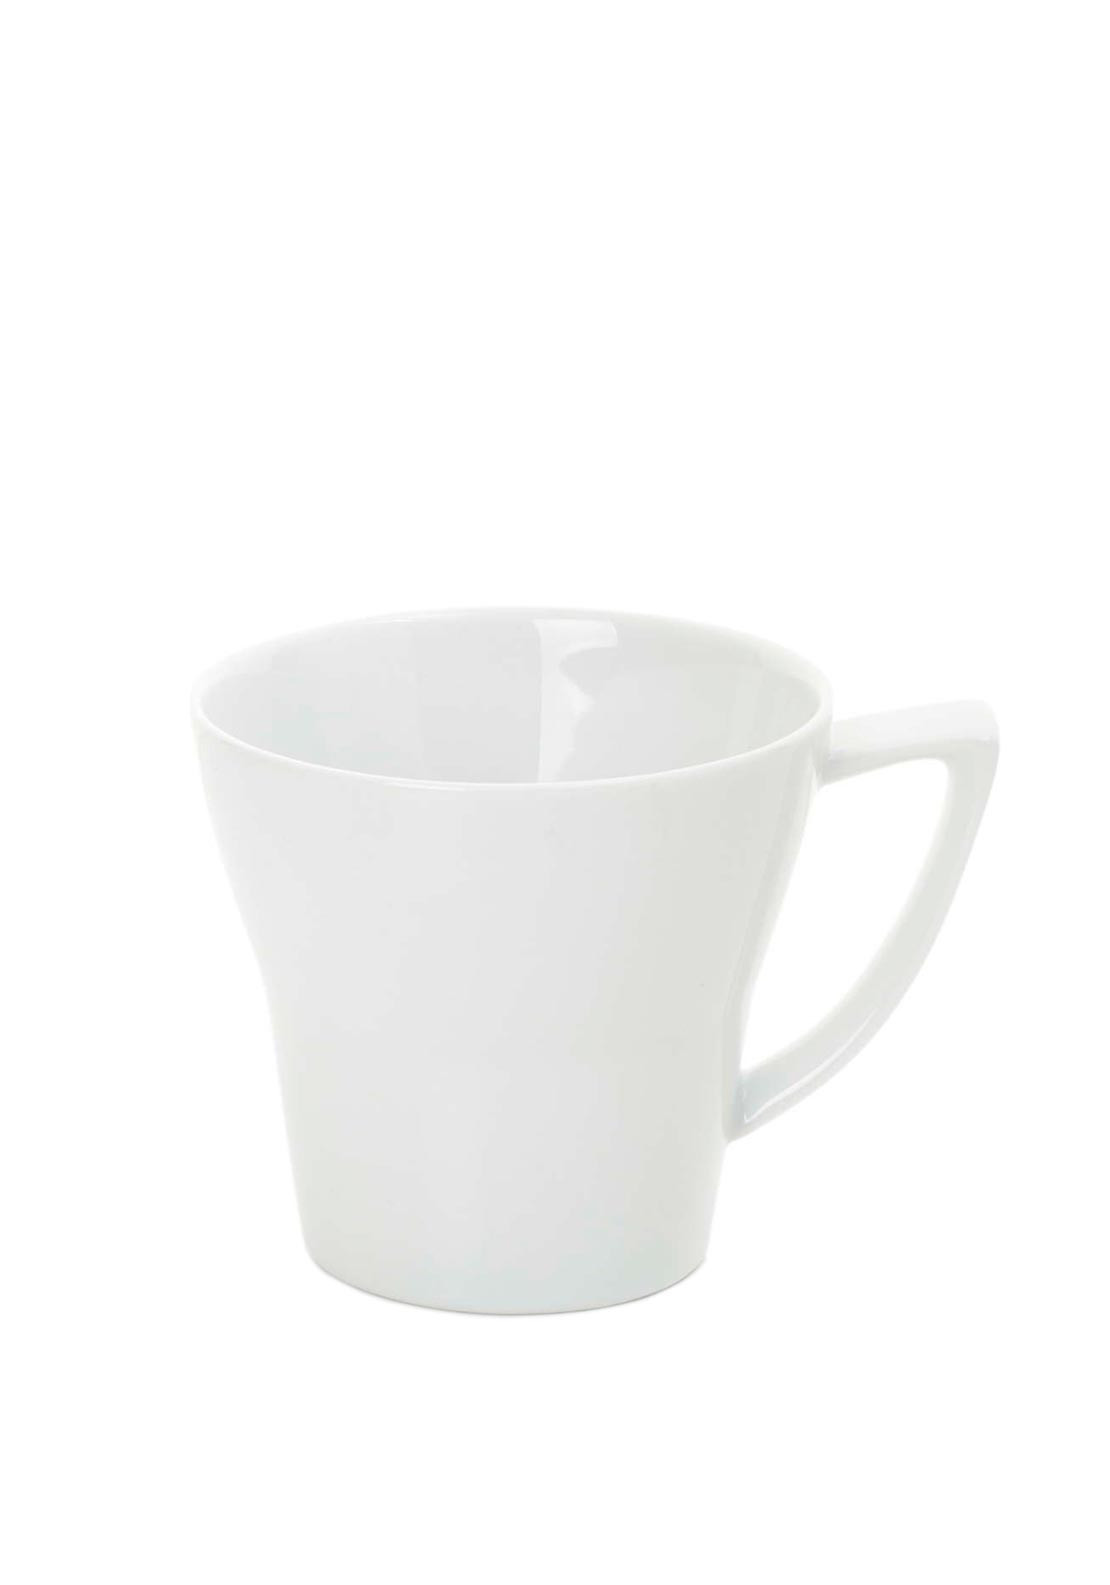 Denby James Martin Everyday Small Mug